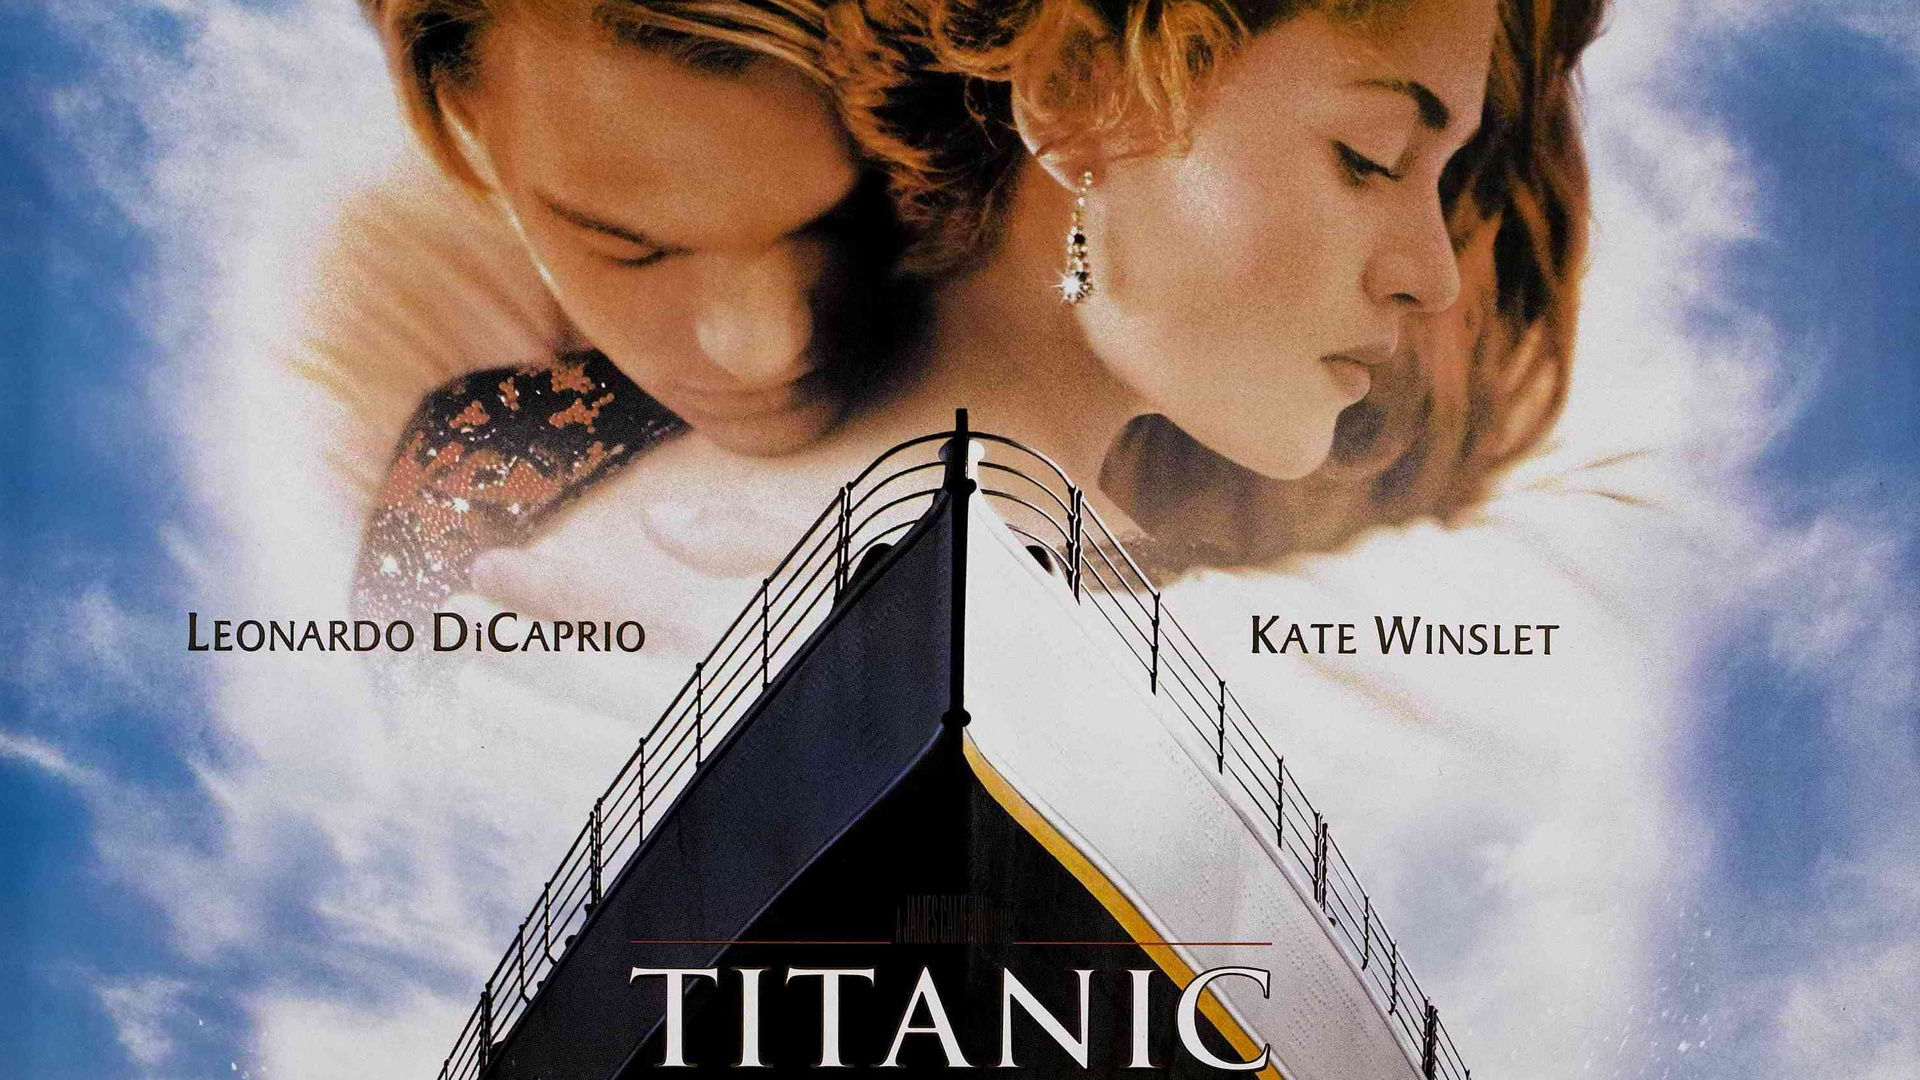 titanic movie wallpapers in jpg format for free download